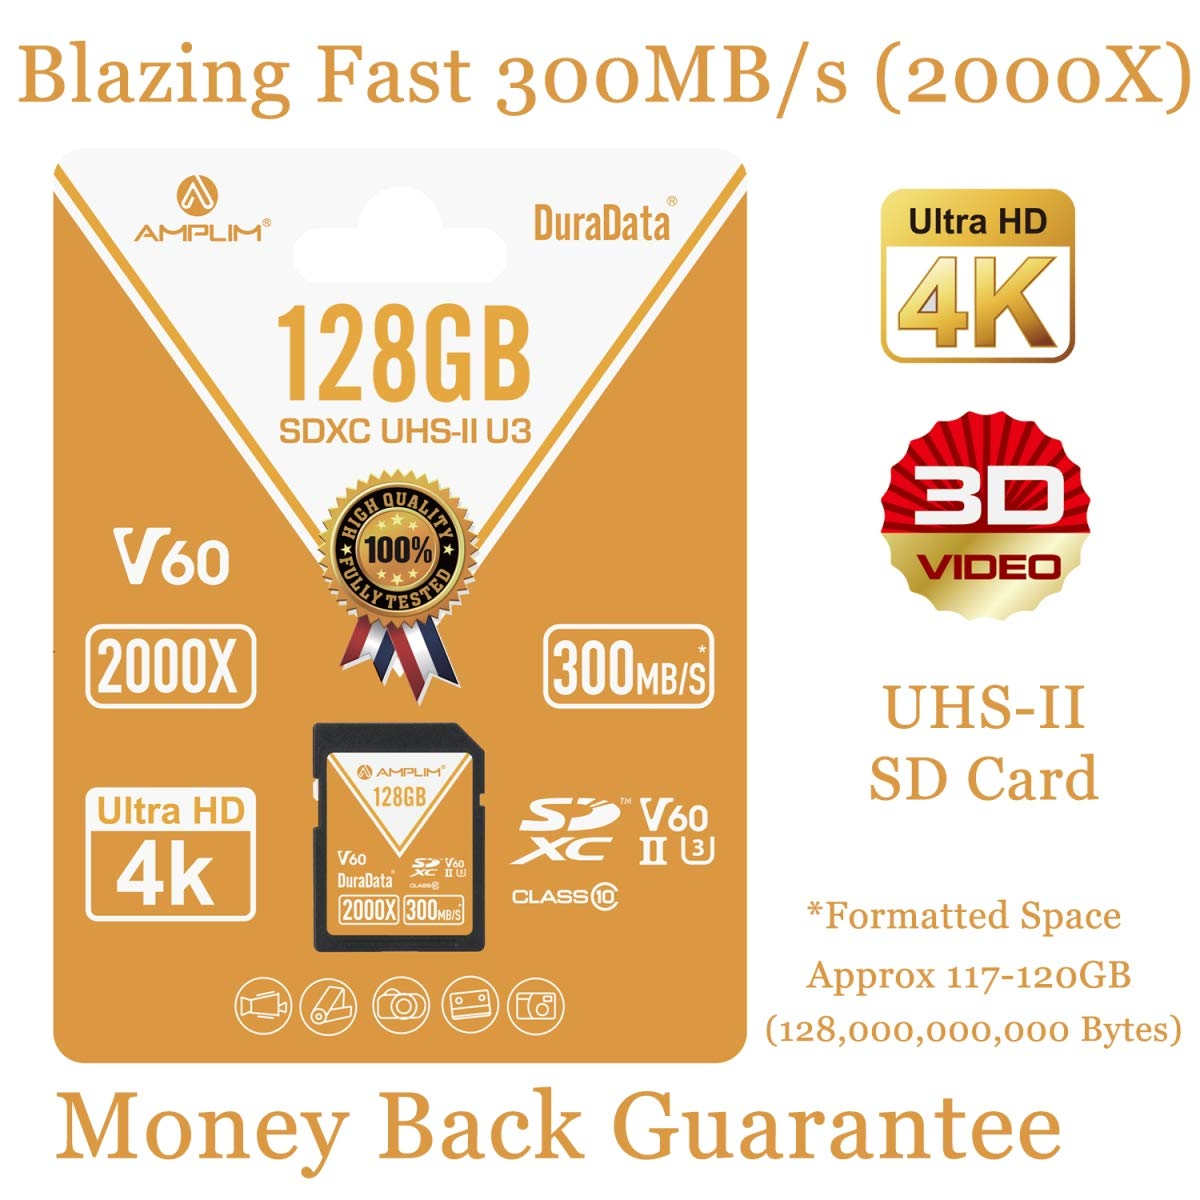 128GB V60 UHS-II SDXC SD Card - Amplim Blazing Fast 300MB/S (2000X) UHS2 Extreme High Speed 128 GB/128G SD XC Memory Card. 4K 8K Video Camera UHSII Card for Fujifilm, Nikon, Olympus, Panasonic, Sony by Amplim